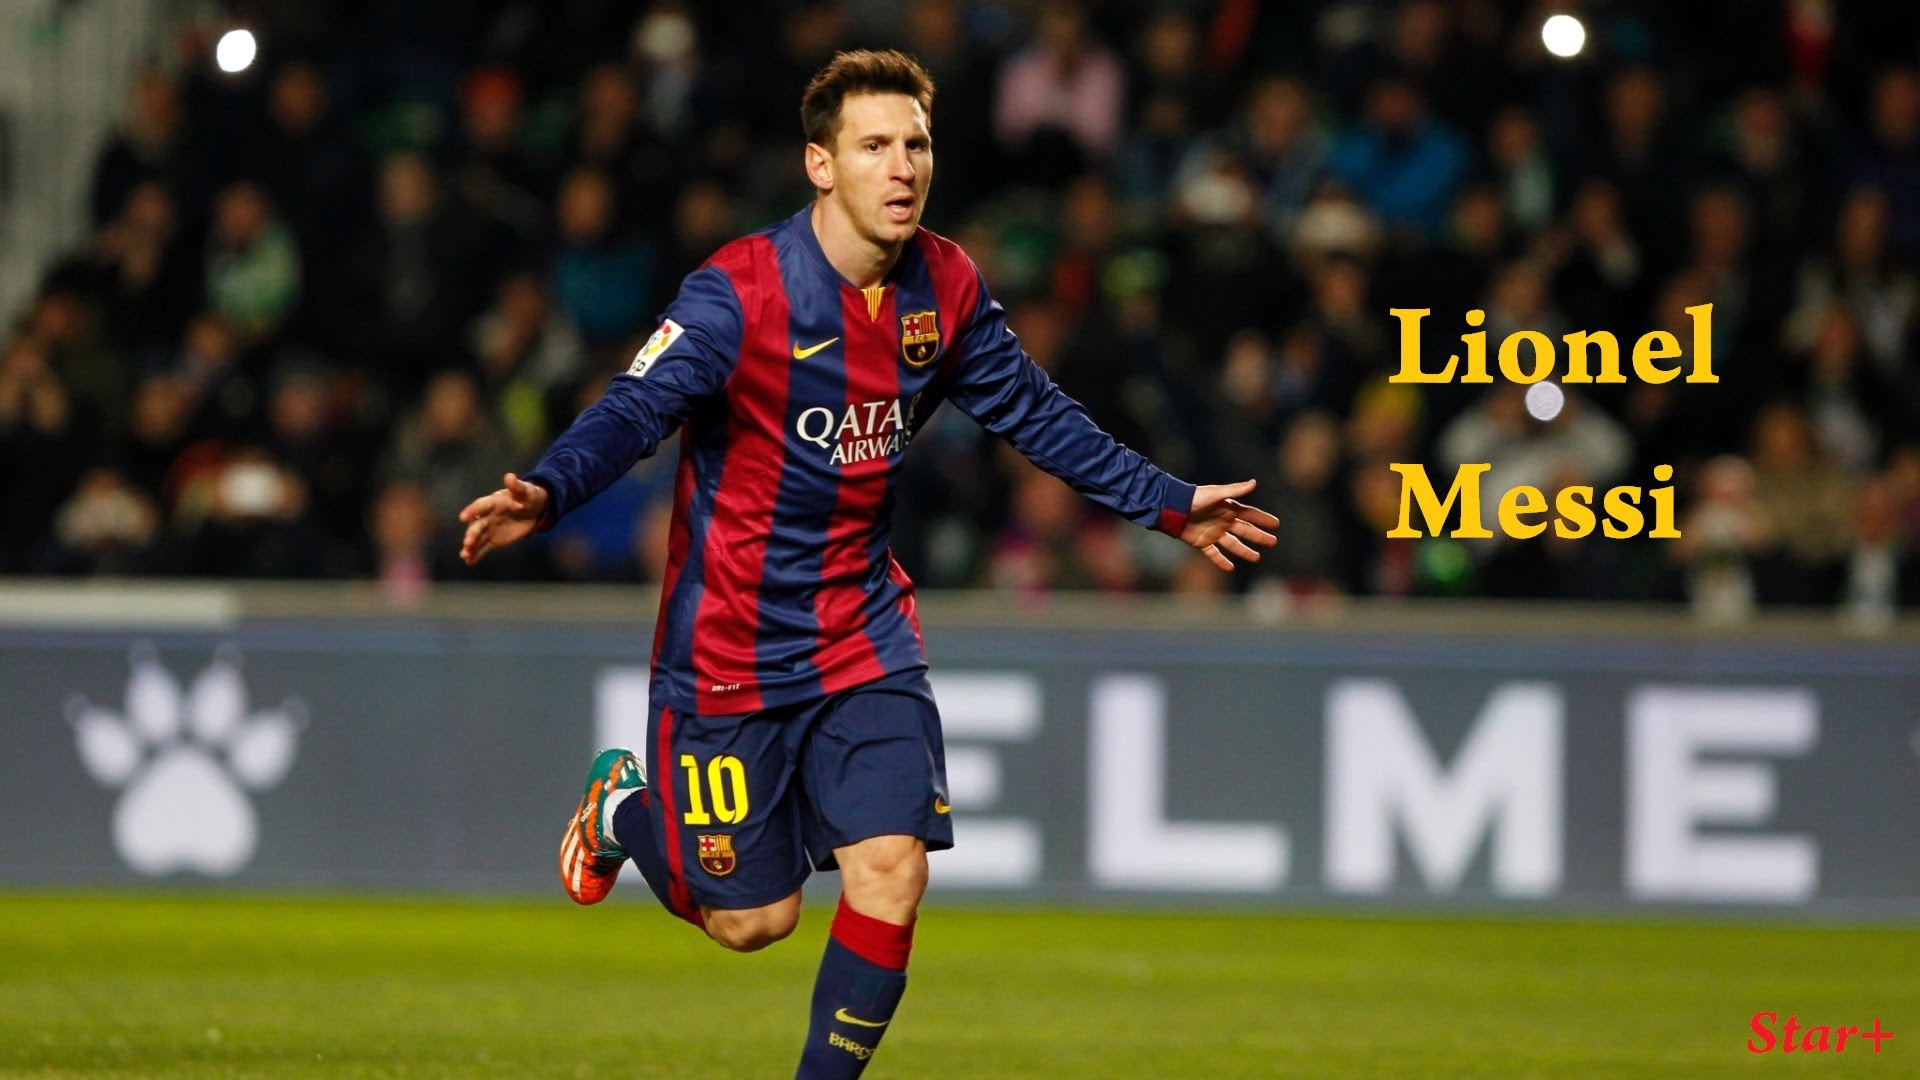 LIONEL-MESSI-The-technical-challenge-ball-of-Lionel-Messi-wallpaper-wp3401671